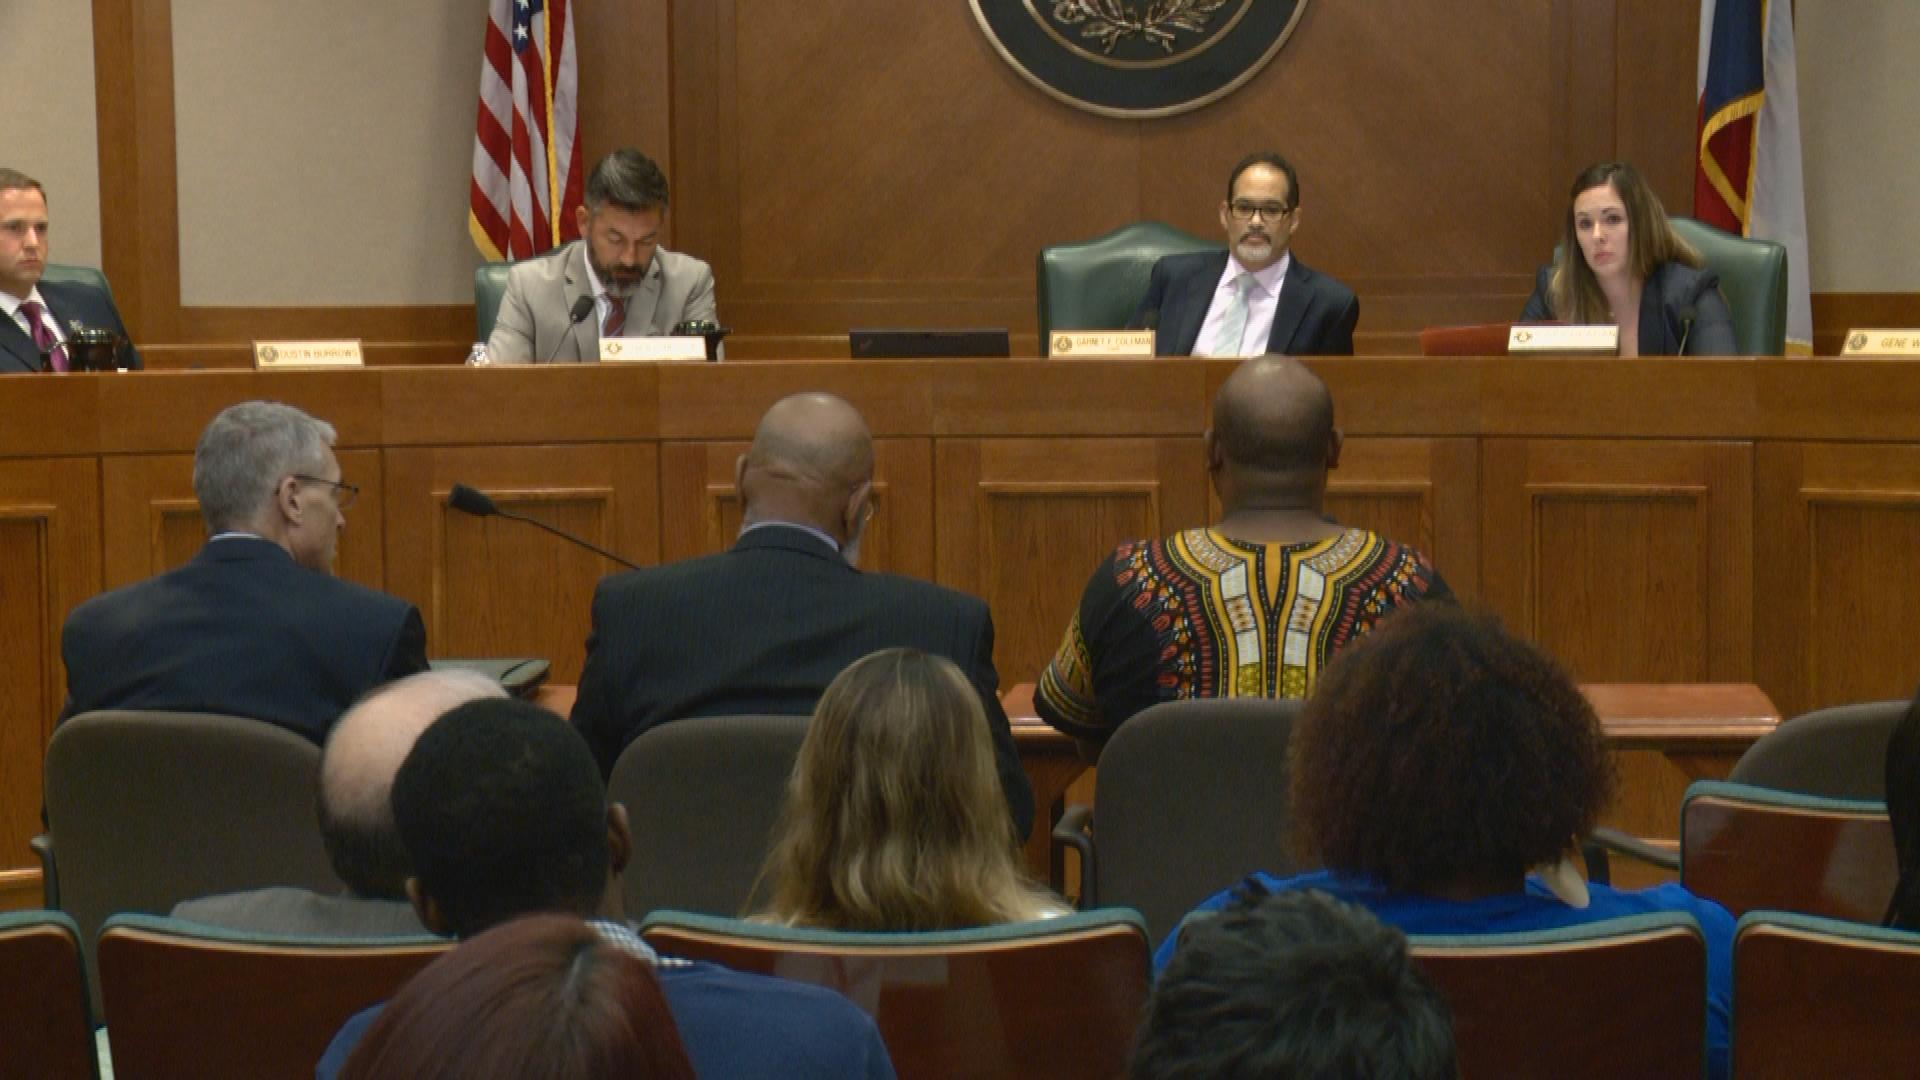 (Left to right) DPS director, Steve McCraw, Former Congressman Craig Washington, and Ashton Woods of Black Lives Matter testify before the Hous_375603